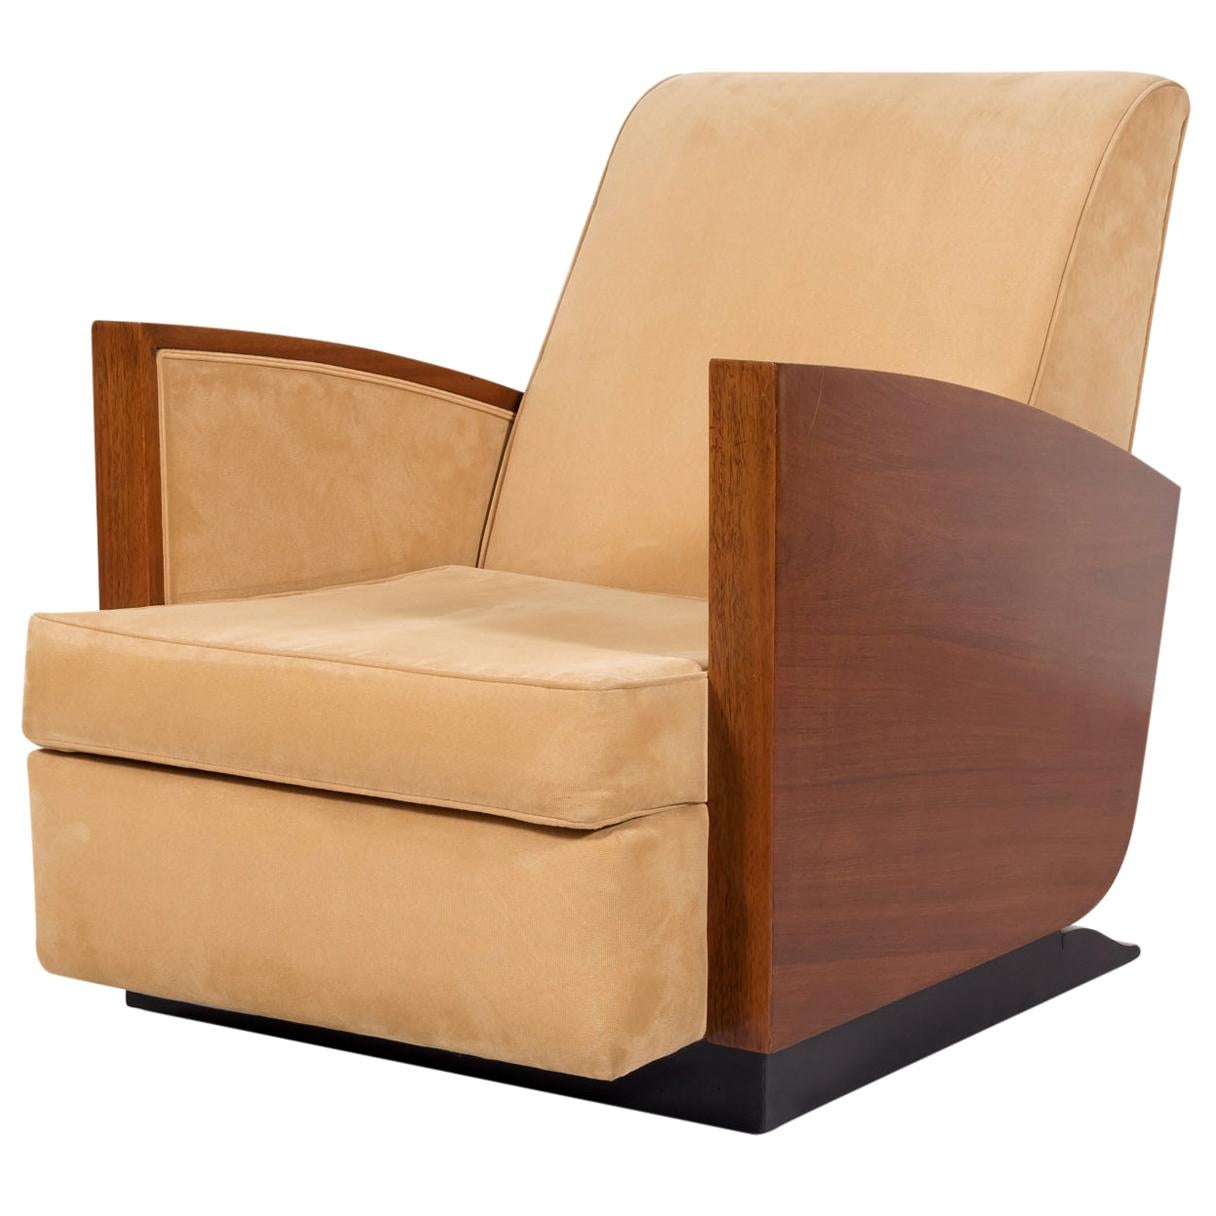 1930s French Art Deco Period Walnut Armchair or Lounge Chair